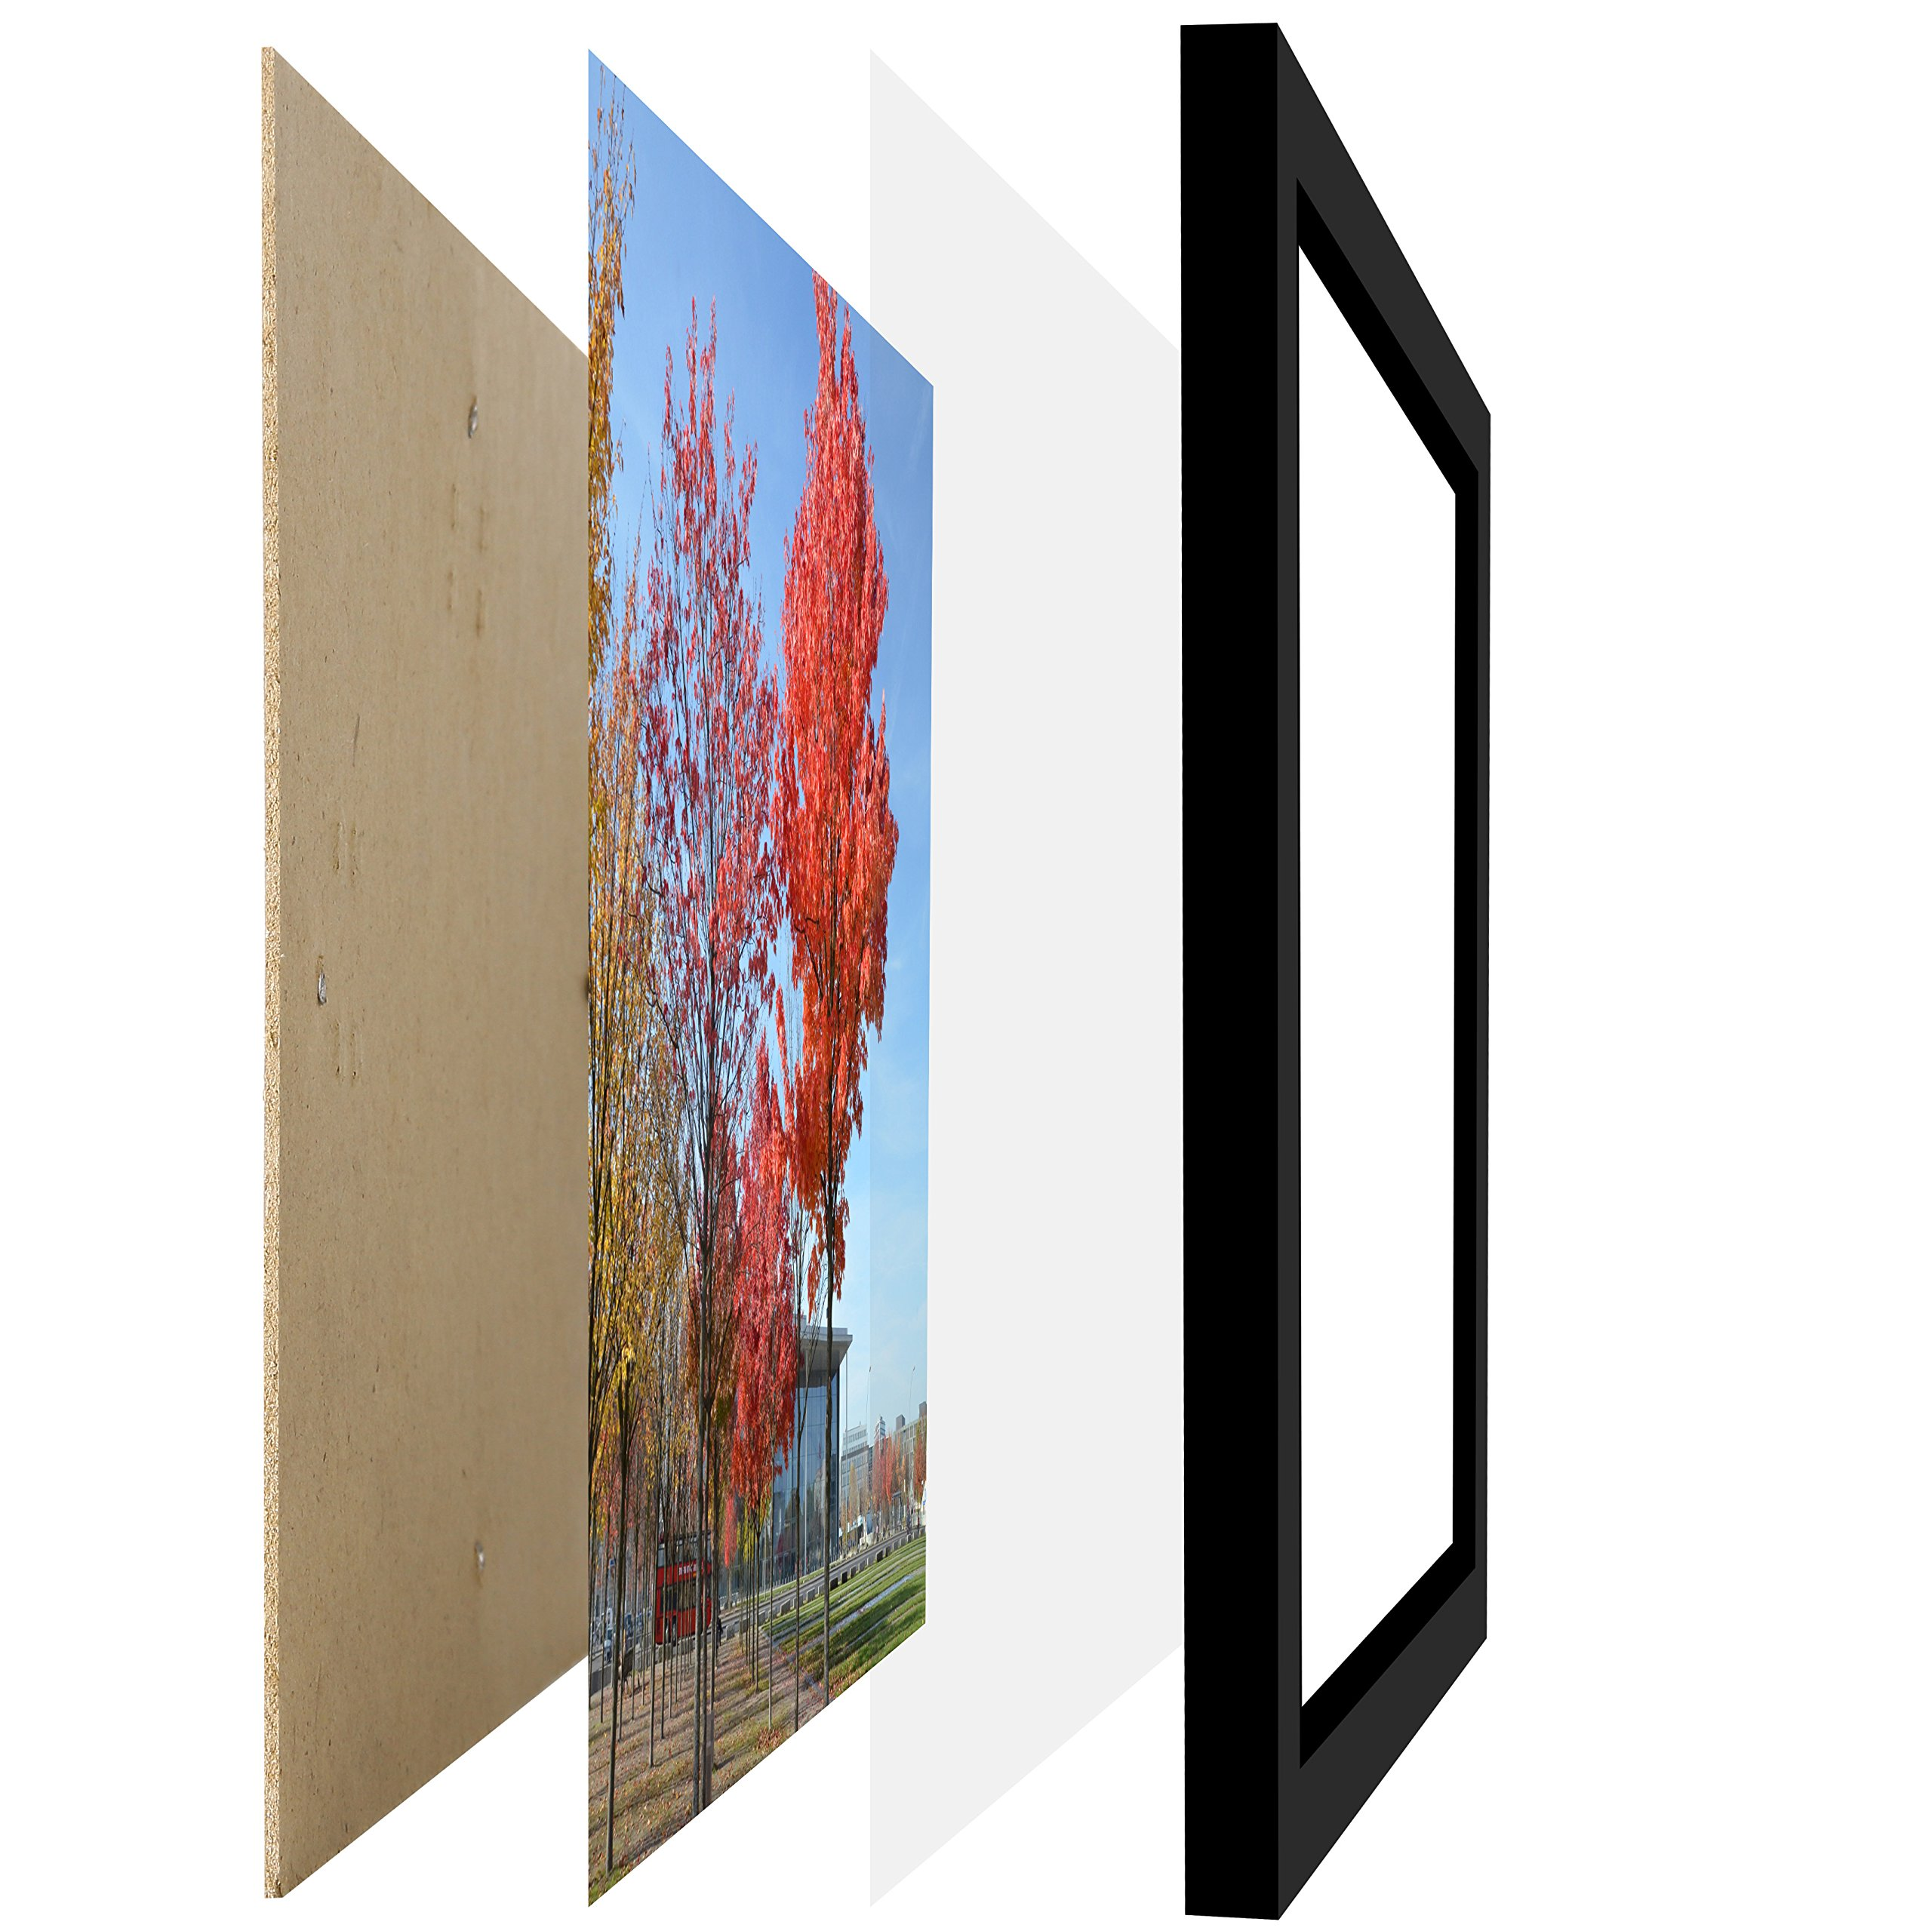 Medog 11 by 17 Inch Picture Frame Without Mat to Display Picture 11x17 Wall Mounting Document Certificate Frames If Add Mat Can As 11x14 10x14 9x11 10x12 8x10 7x11 7x9 6x8 Picture Frame P1H by Medog